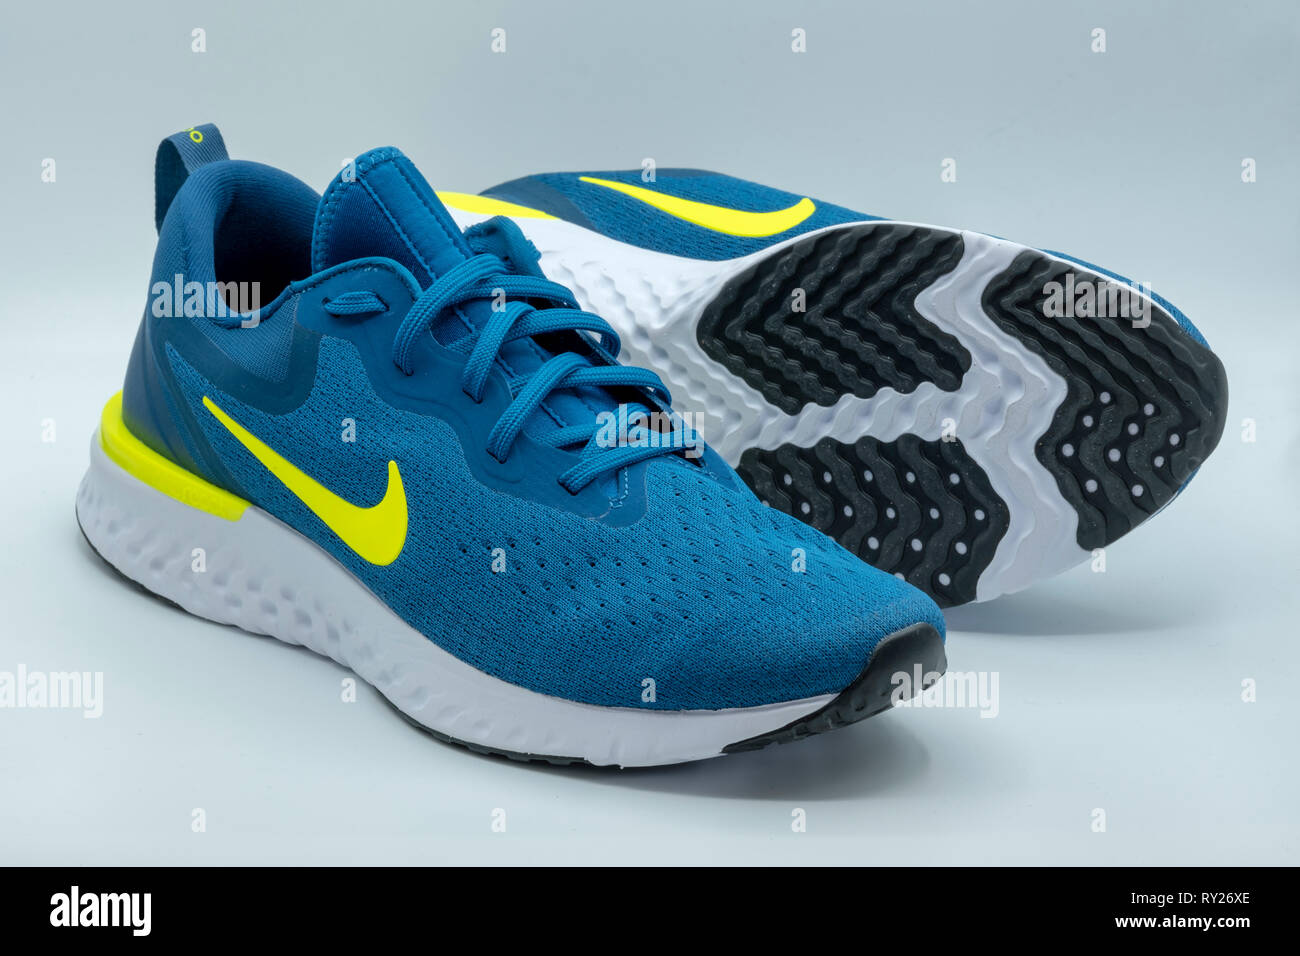 3162ef72 Blue Nike Odyssey React running shoes cut out isolated on white background  - Stock Image